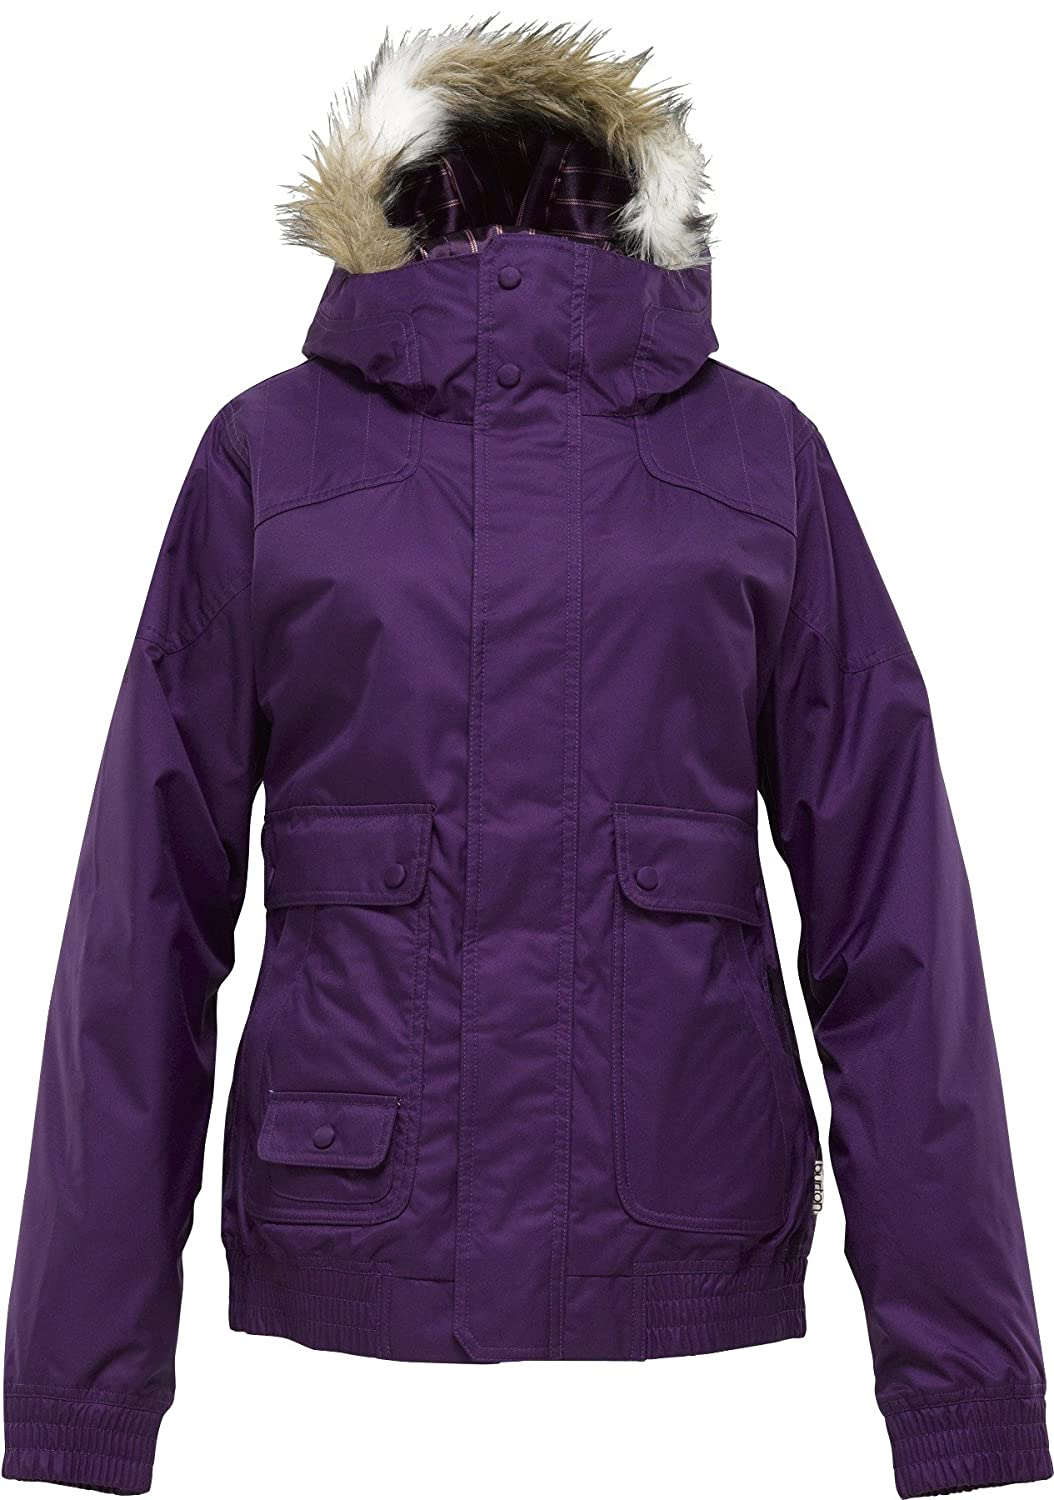 Burton Damen Snowboardjacke Tabloid